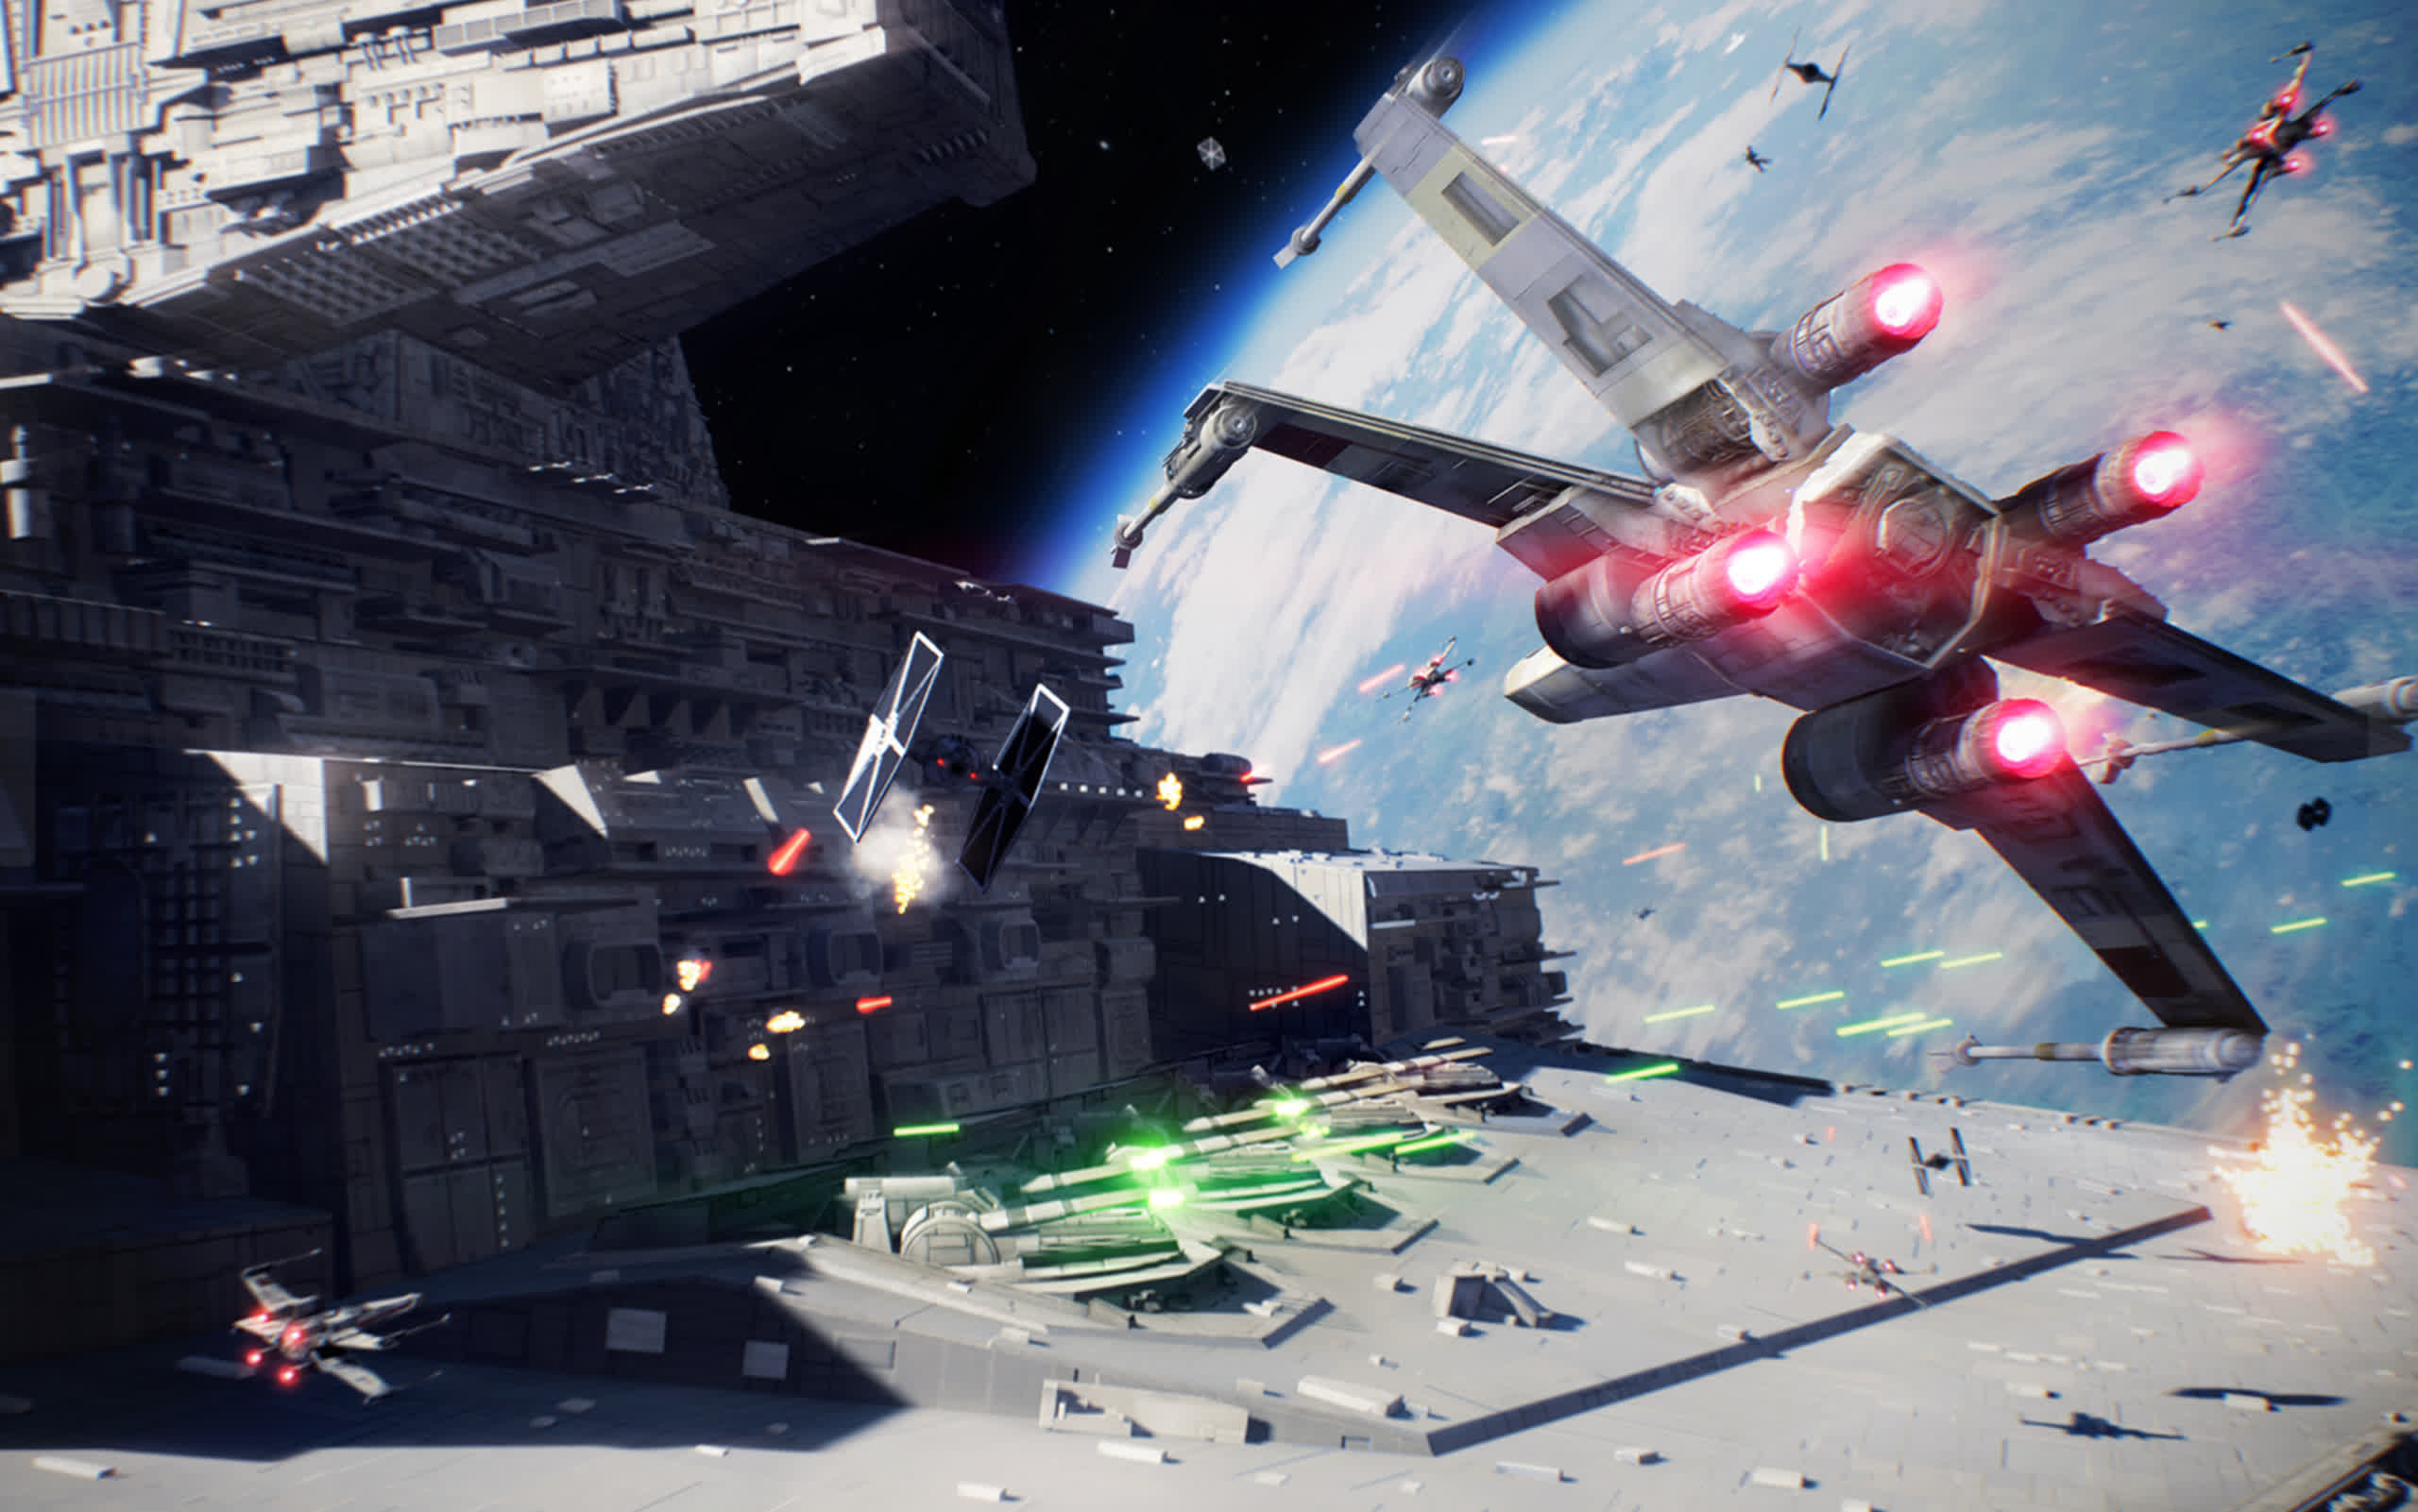 Ubisoft has a 'story-driven open-world' Star Wars game in the works for Lucasfilm Games